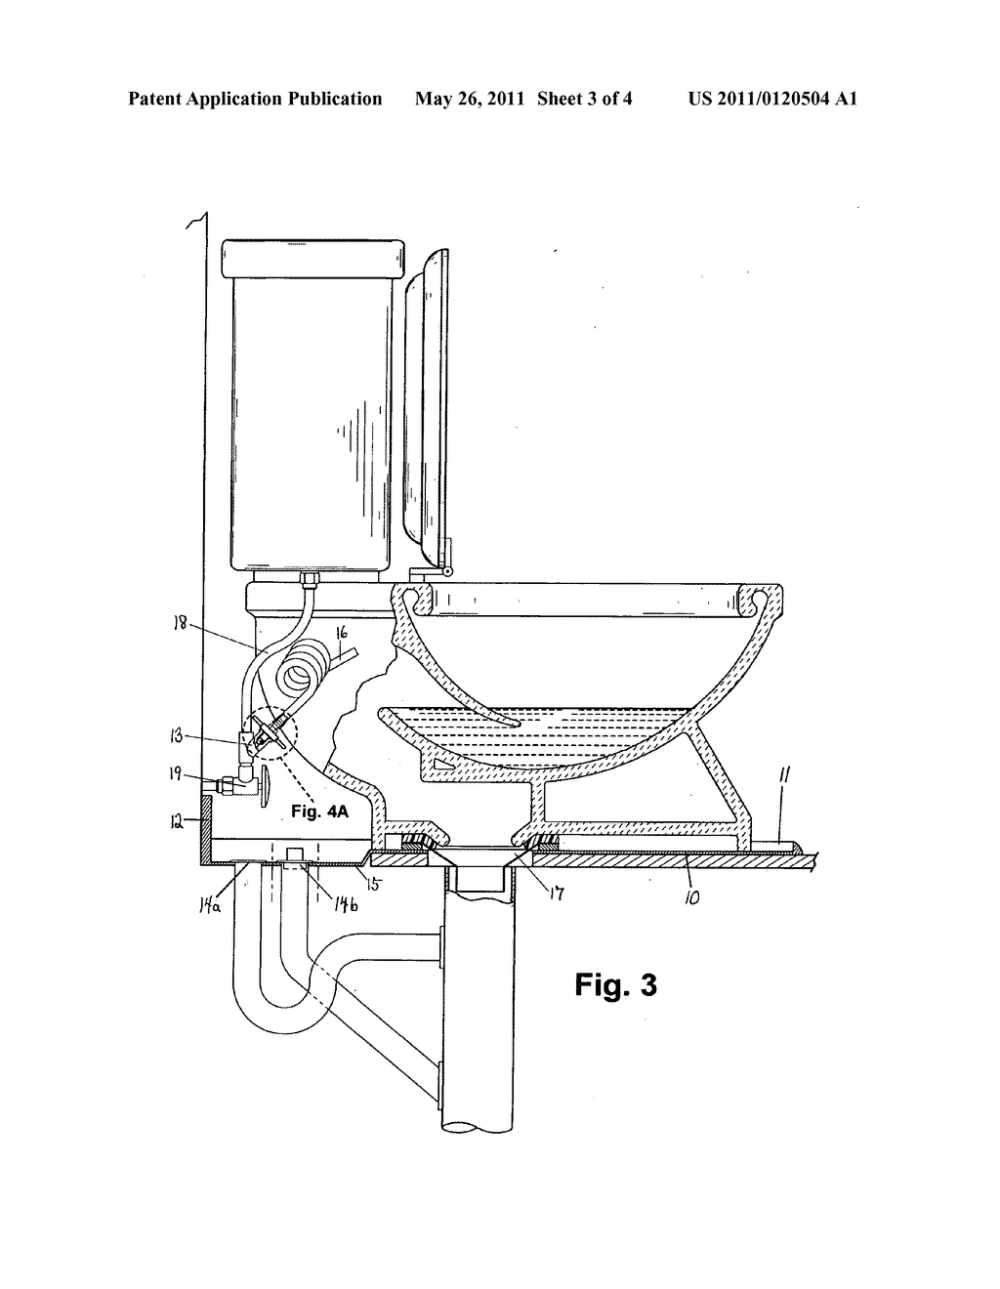 medium resolution of complete sanitary system for the toilet floor base collection and drain structure mechanical apparatuses and plumbing method diagram schematic